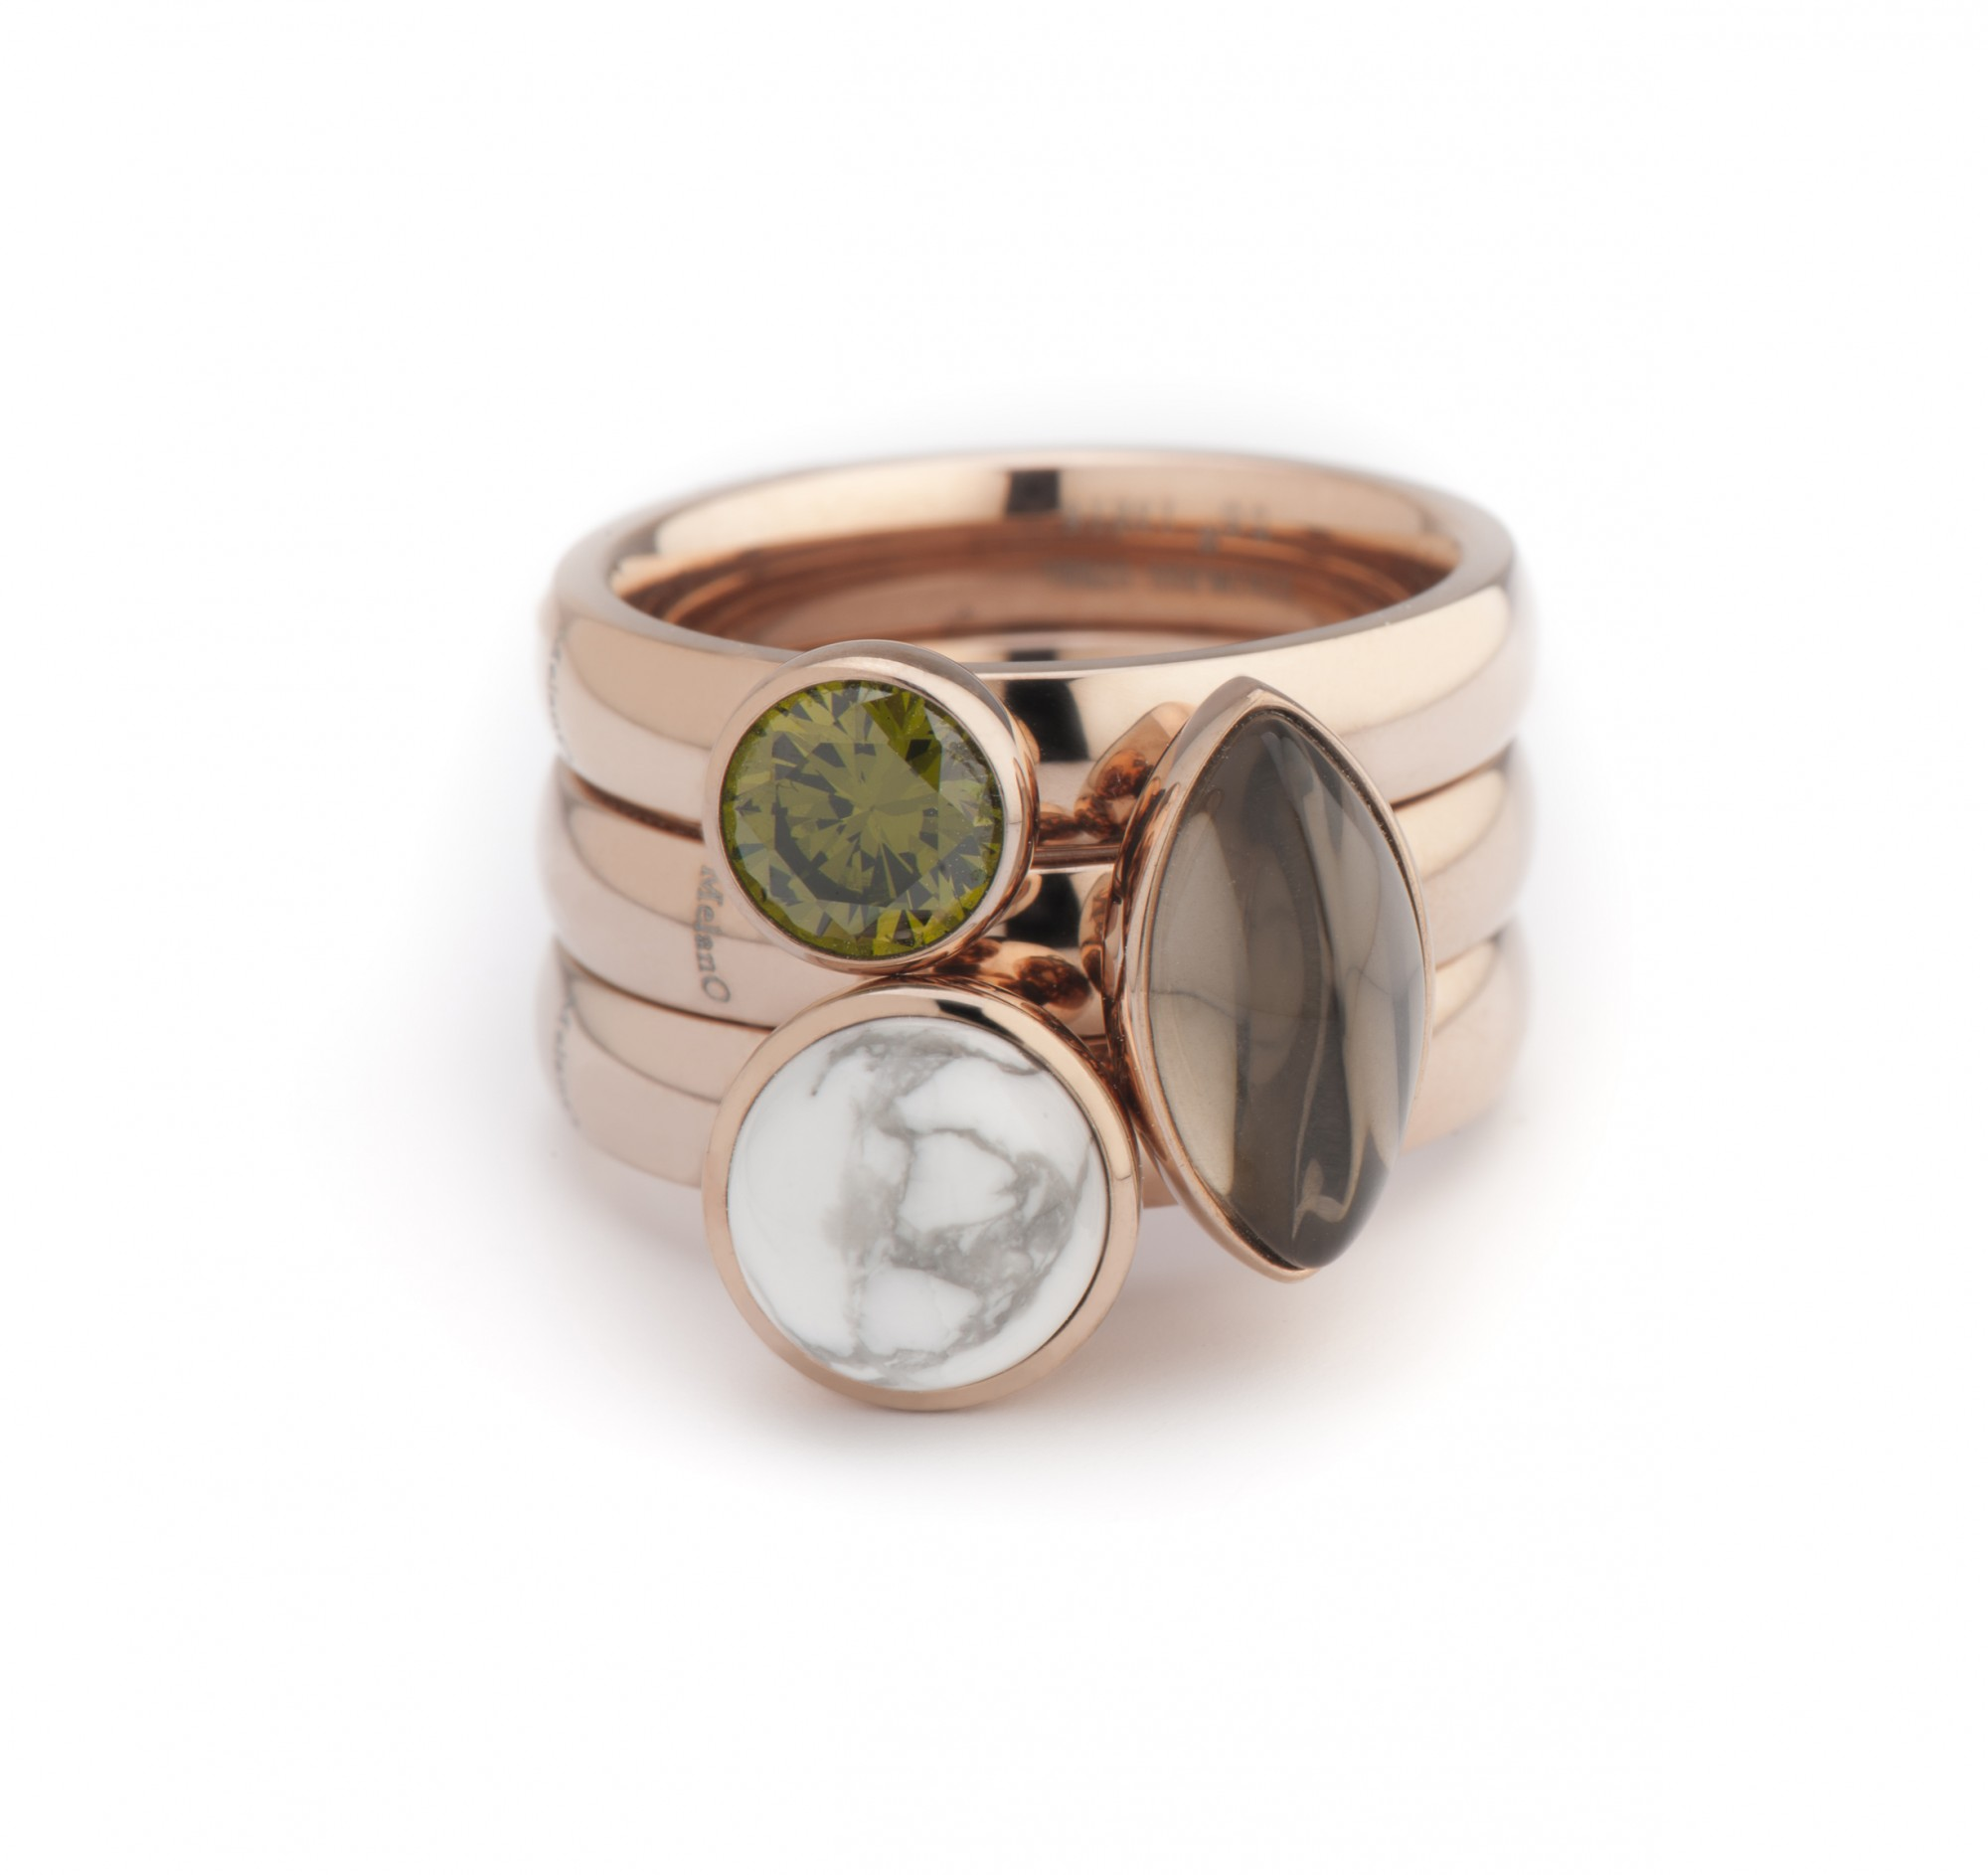 Rings With Rose Design